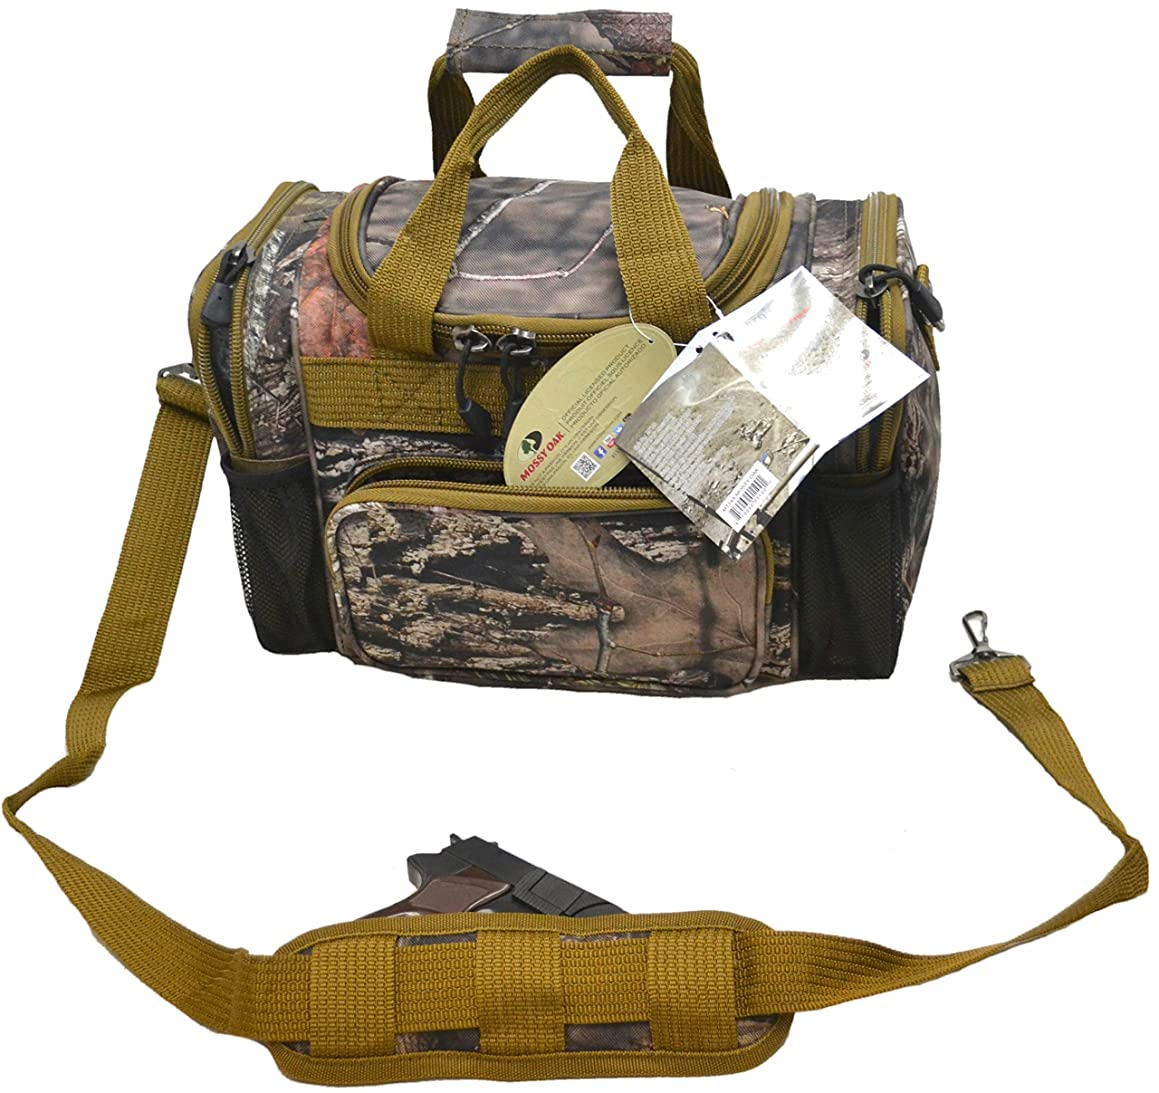 Explorer Mossy Oak Realtree Like Camo Tactical Hunting Camo Duffel Bag Luggage Travel Gear for Men Women Girl Hunting Outdoor Police Security